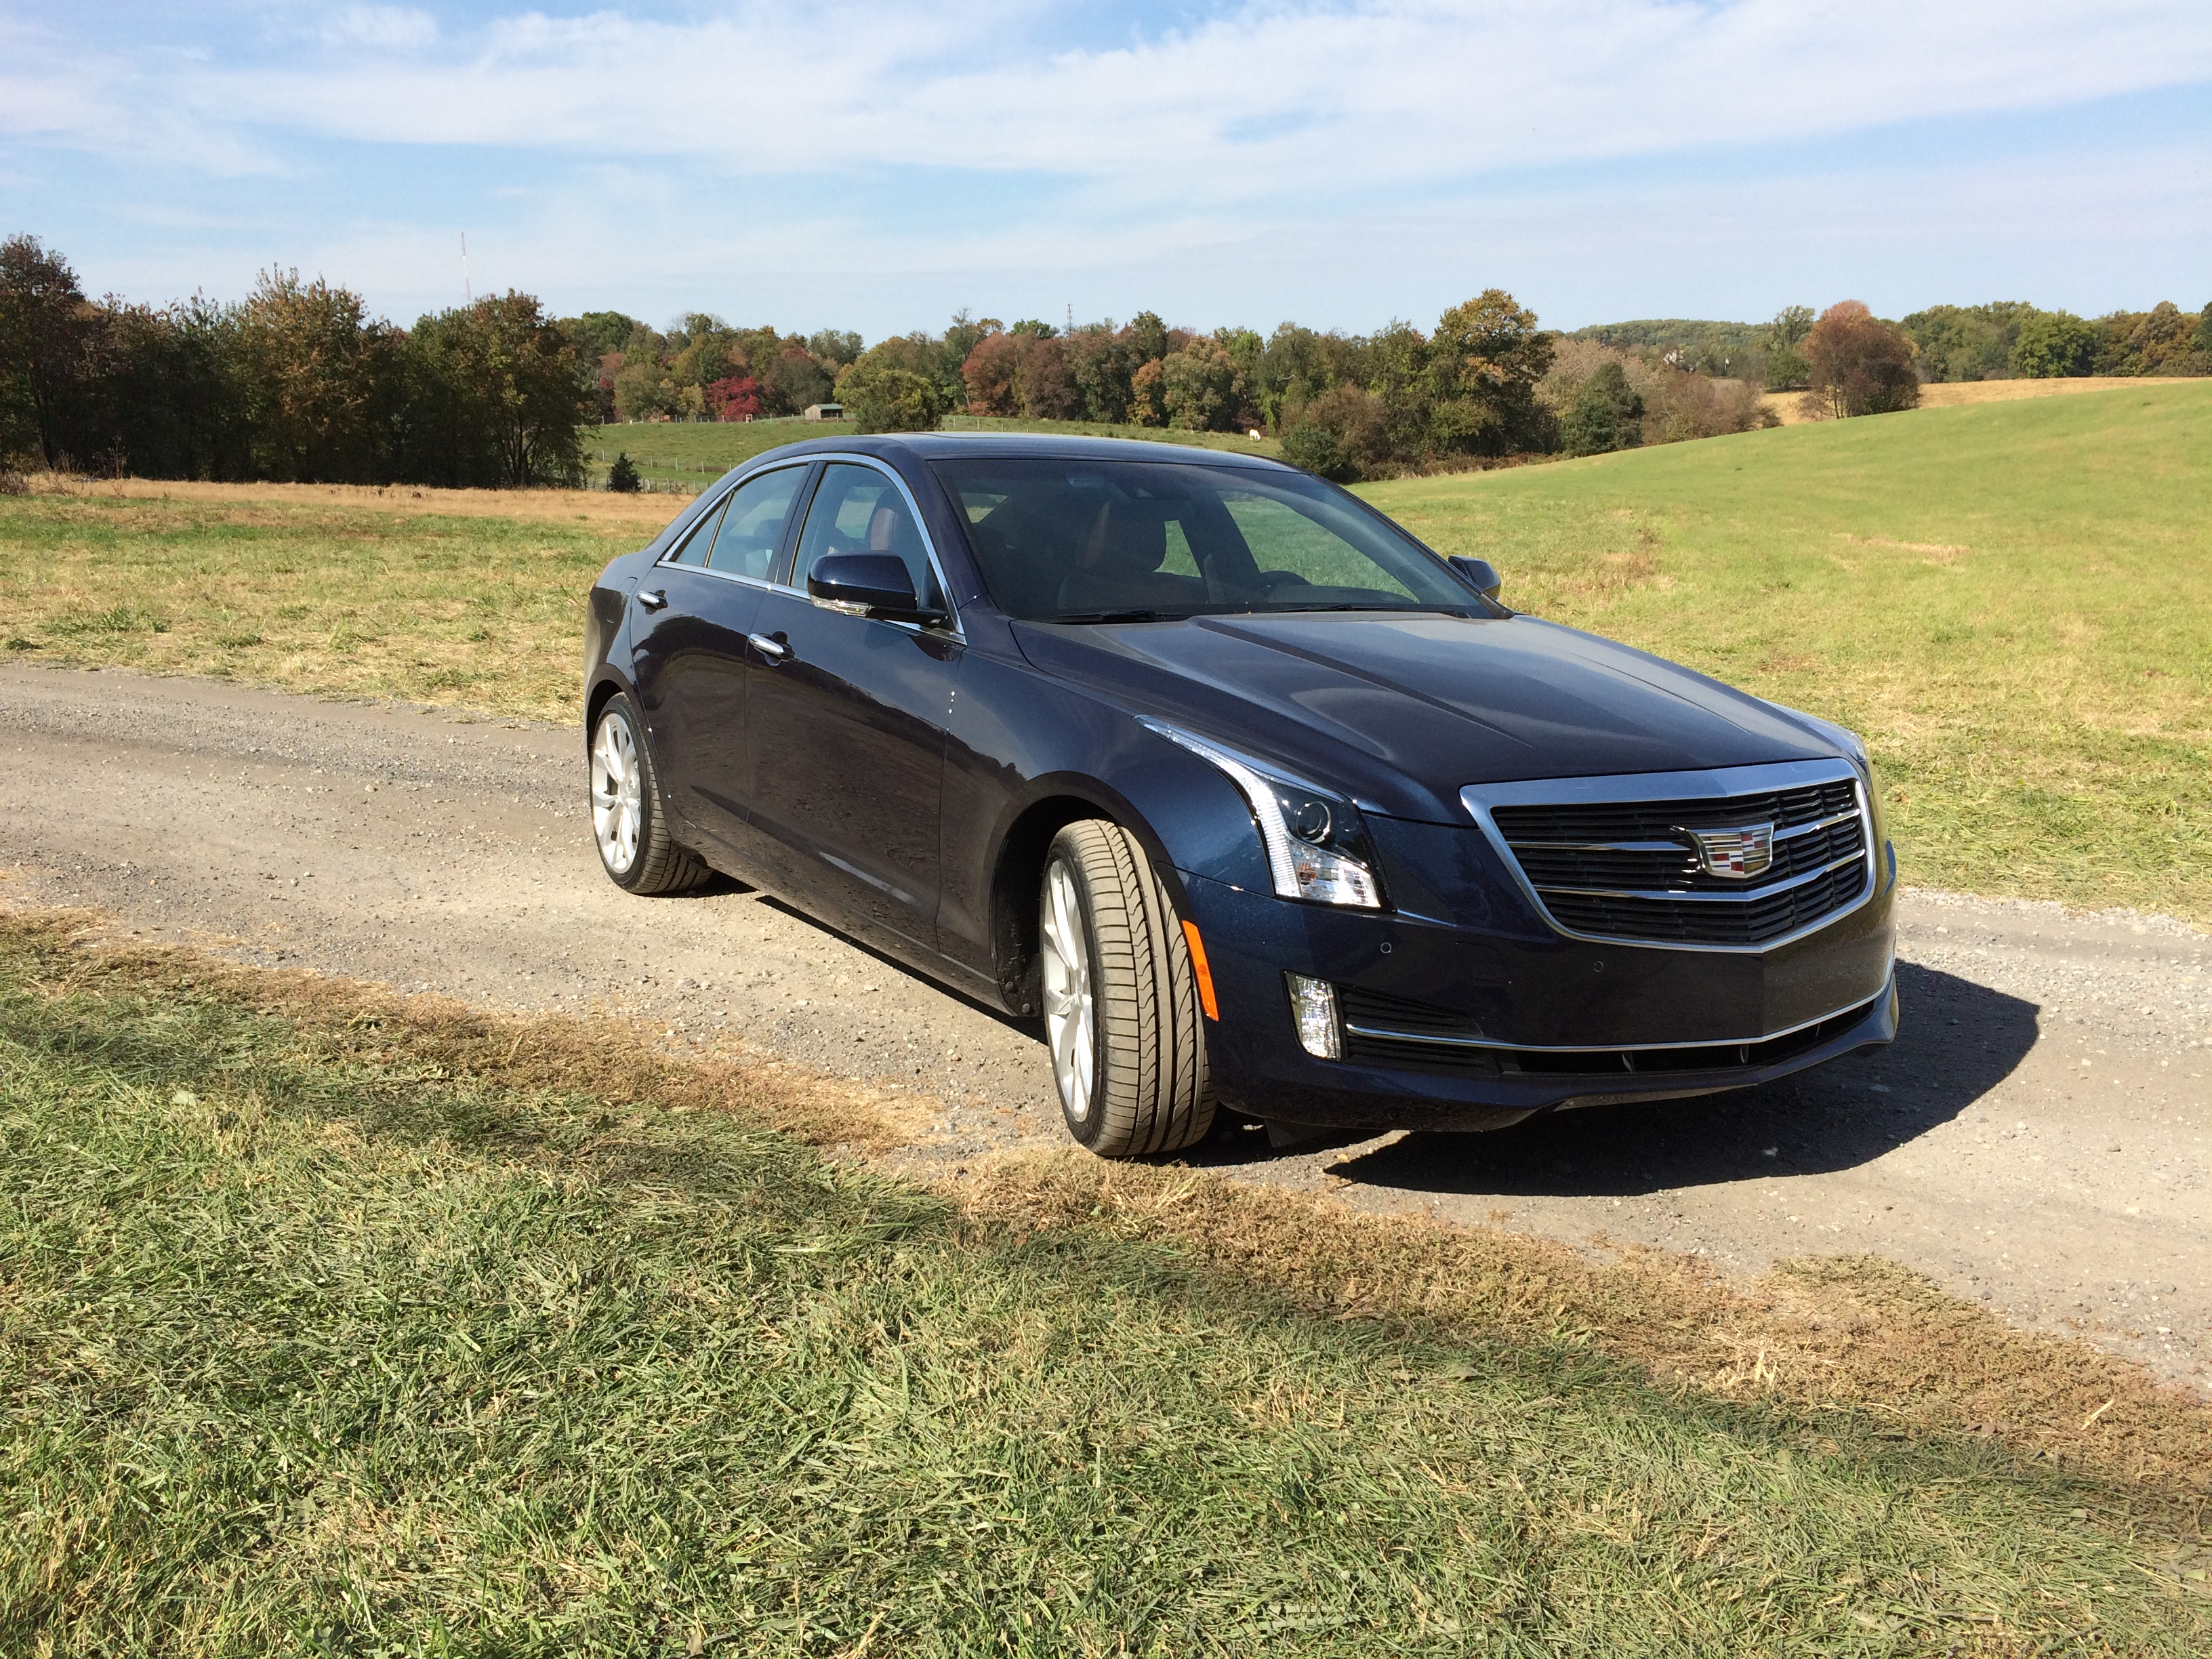 Cadillac ATS gets upgraded V6 for 2016